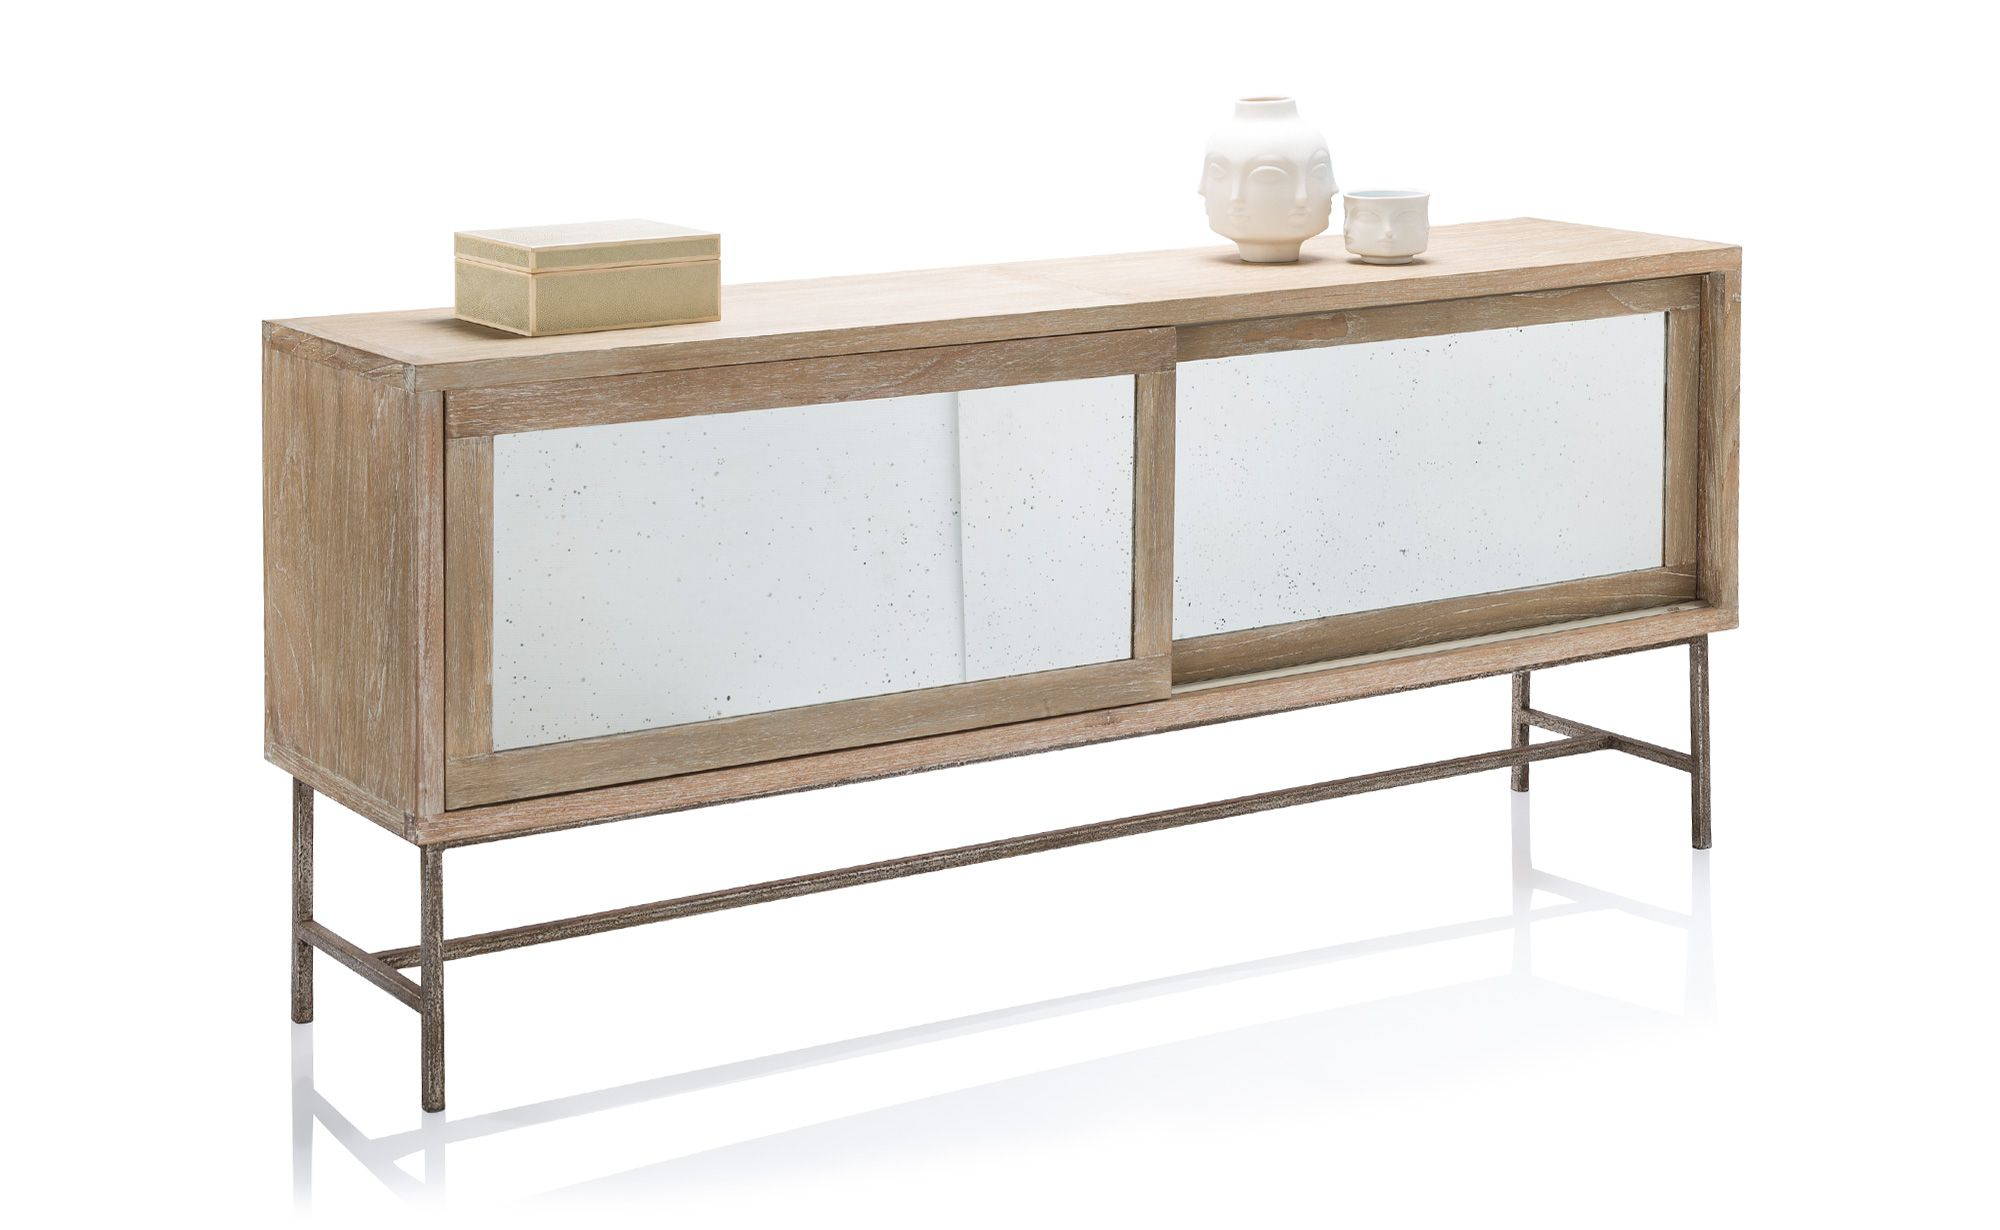 Lime Wash Coffee Table The New Coco Republic Taylor Sideboard Offers A Classic Aesthetic